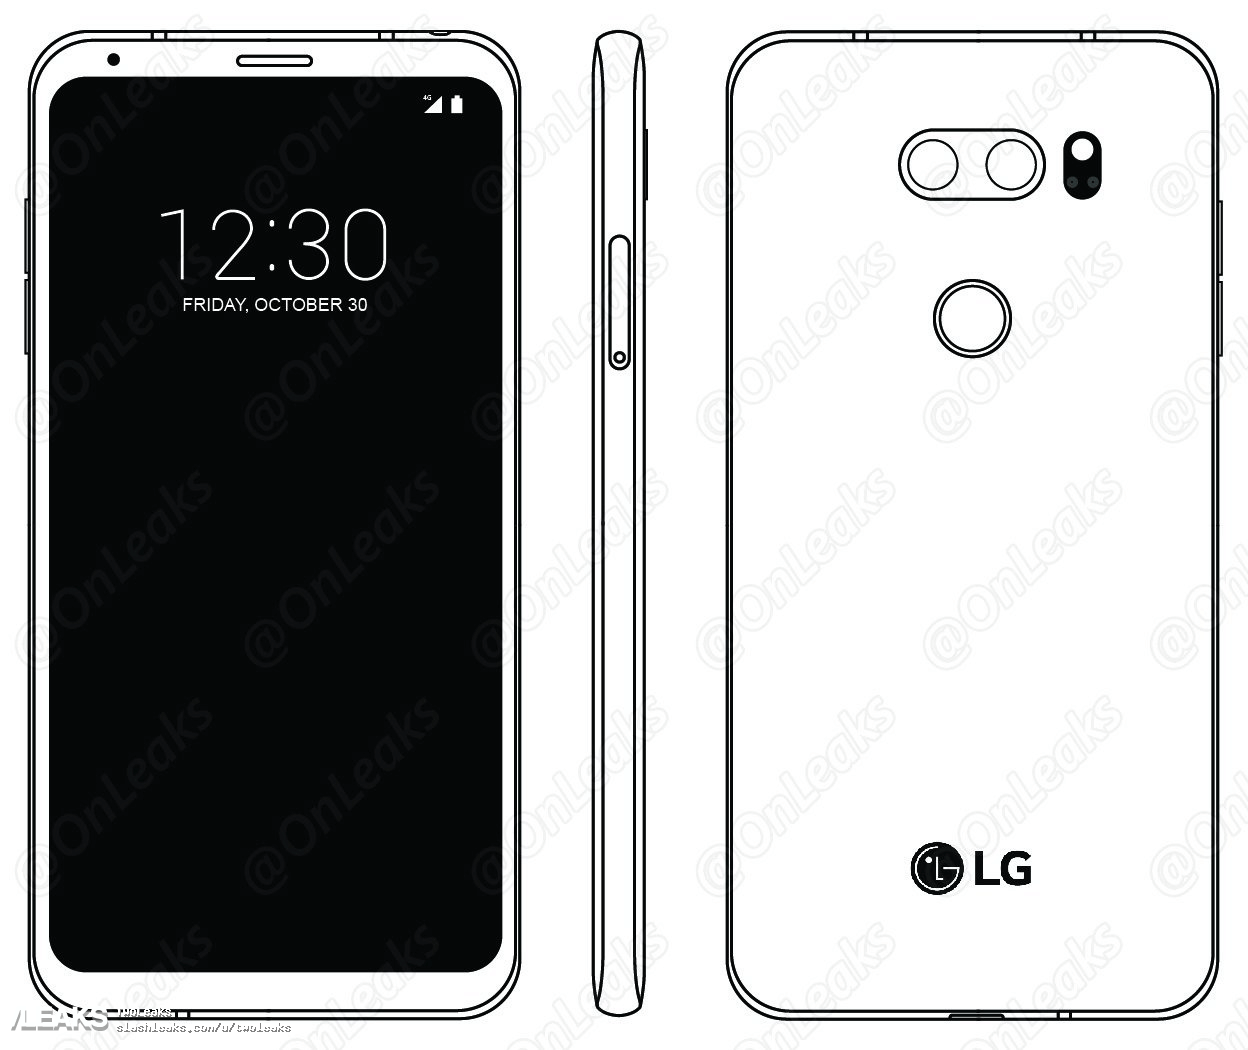 LG V30 Android Smartphone